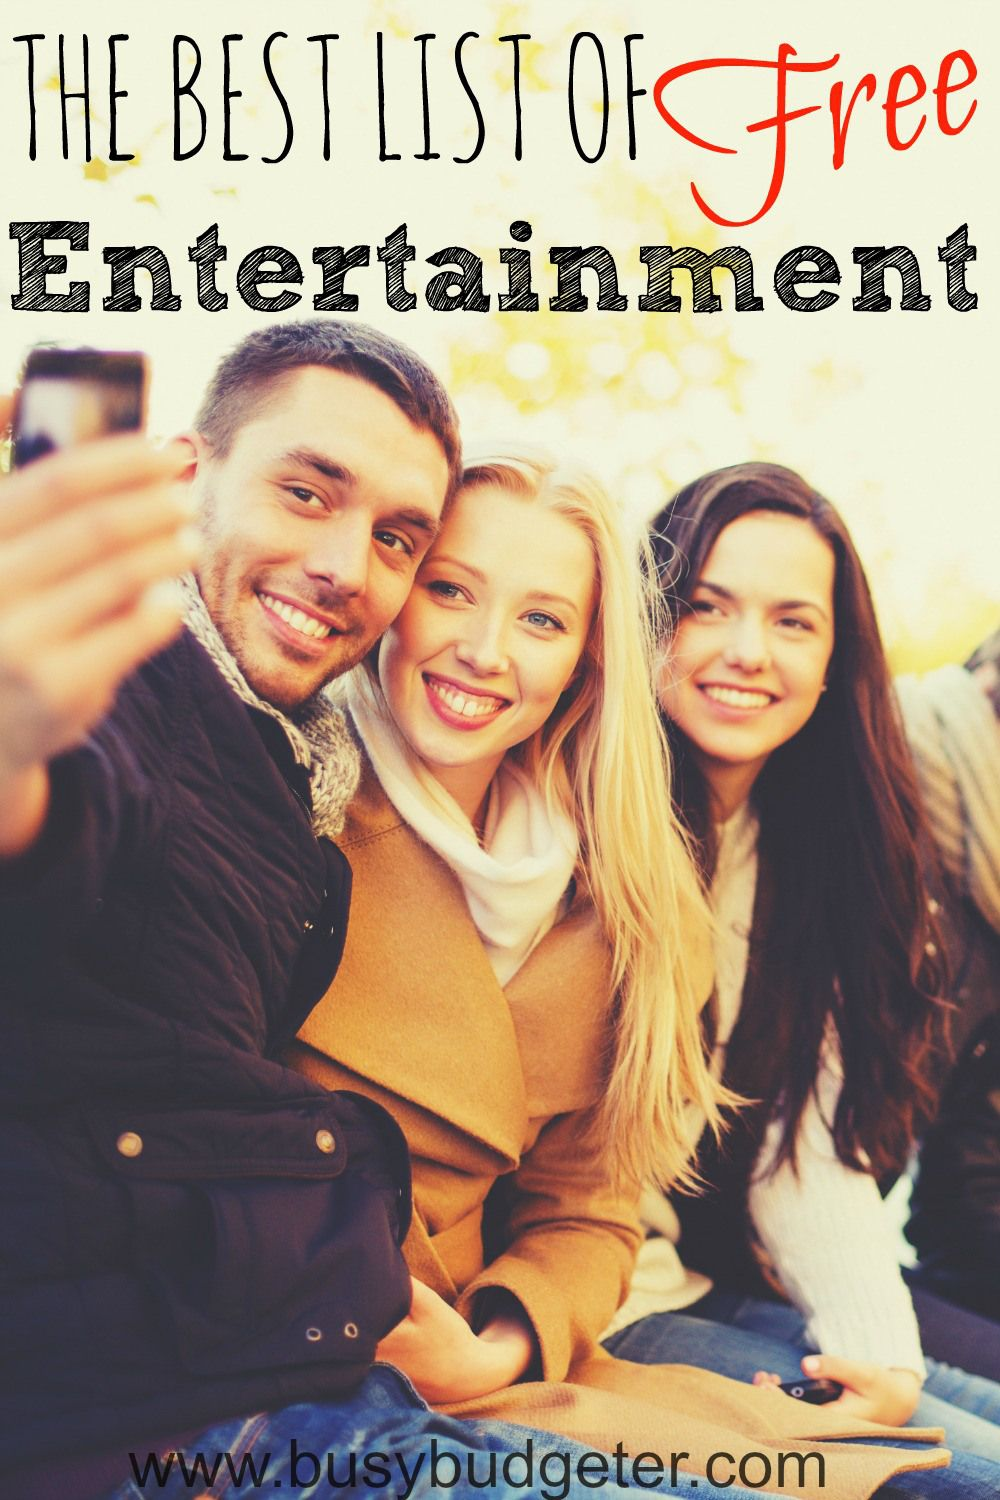 The best list of free entertainment--would be a good idea for date nights!